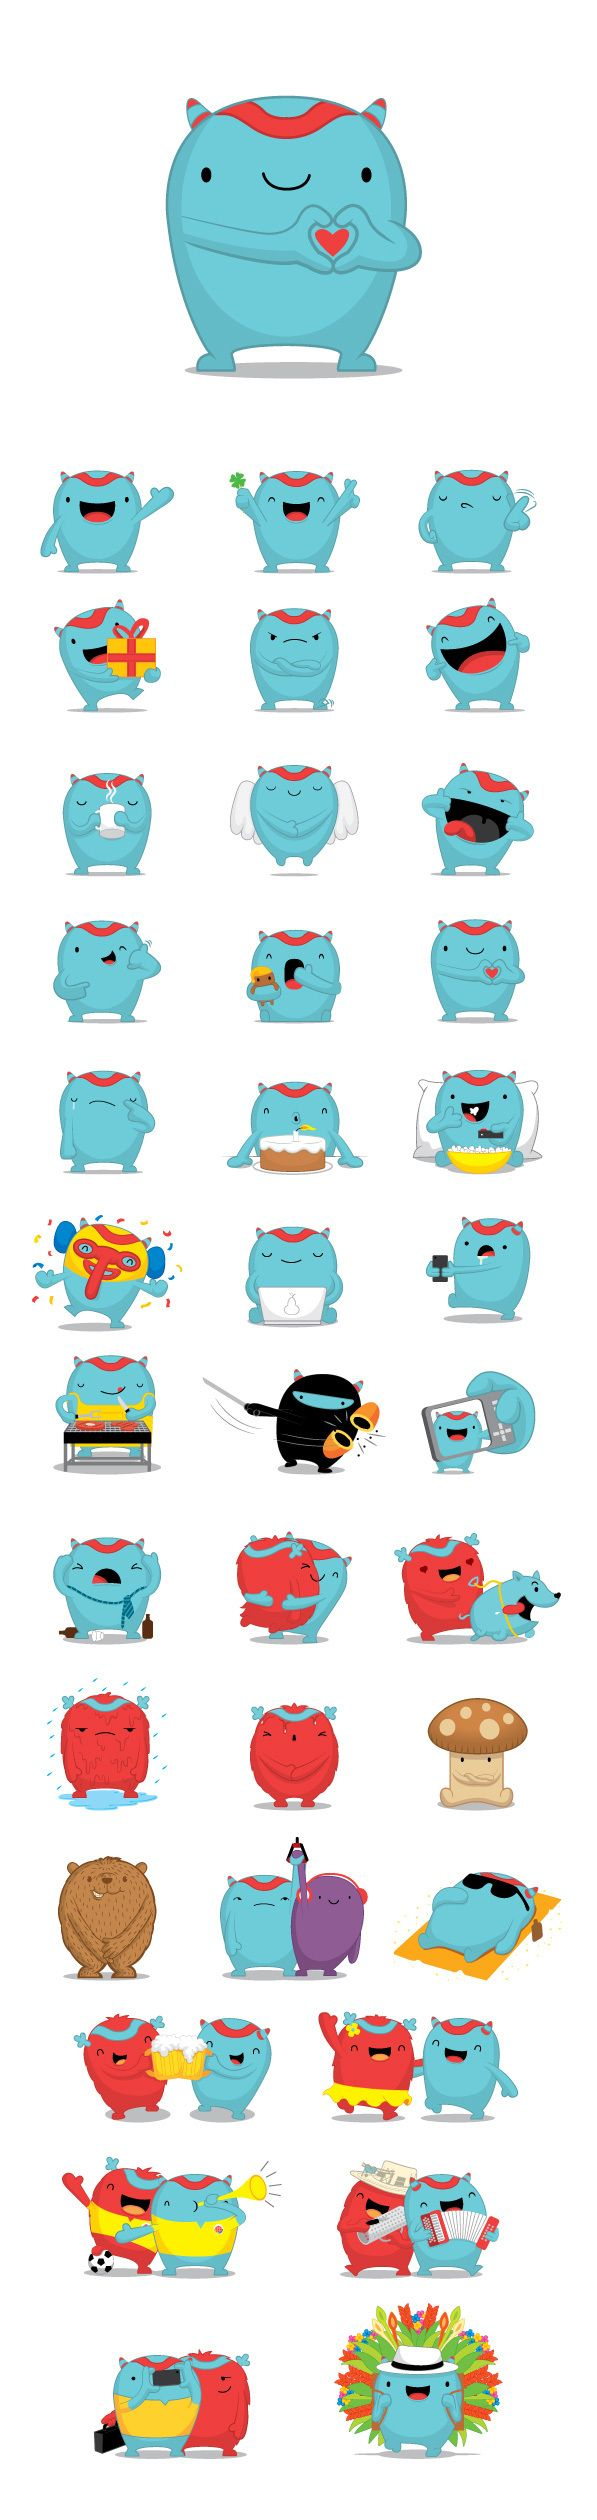 Stickers For Facebook Messenger by OSCAR OSPINA, via Behance